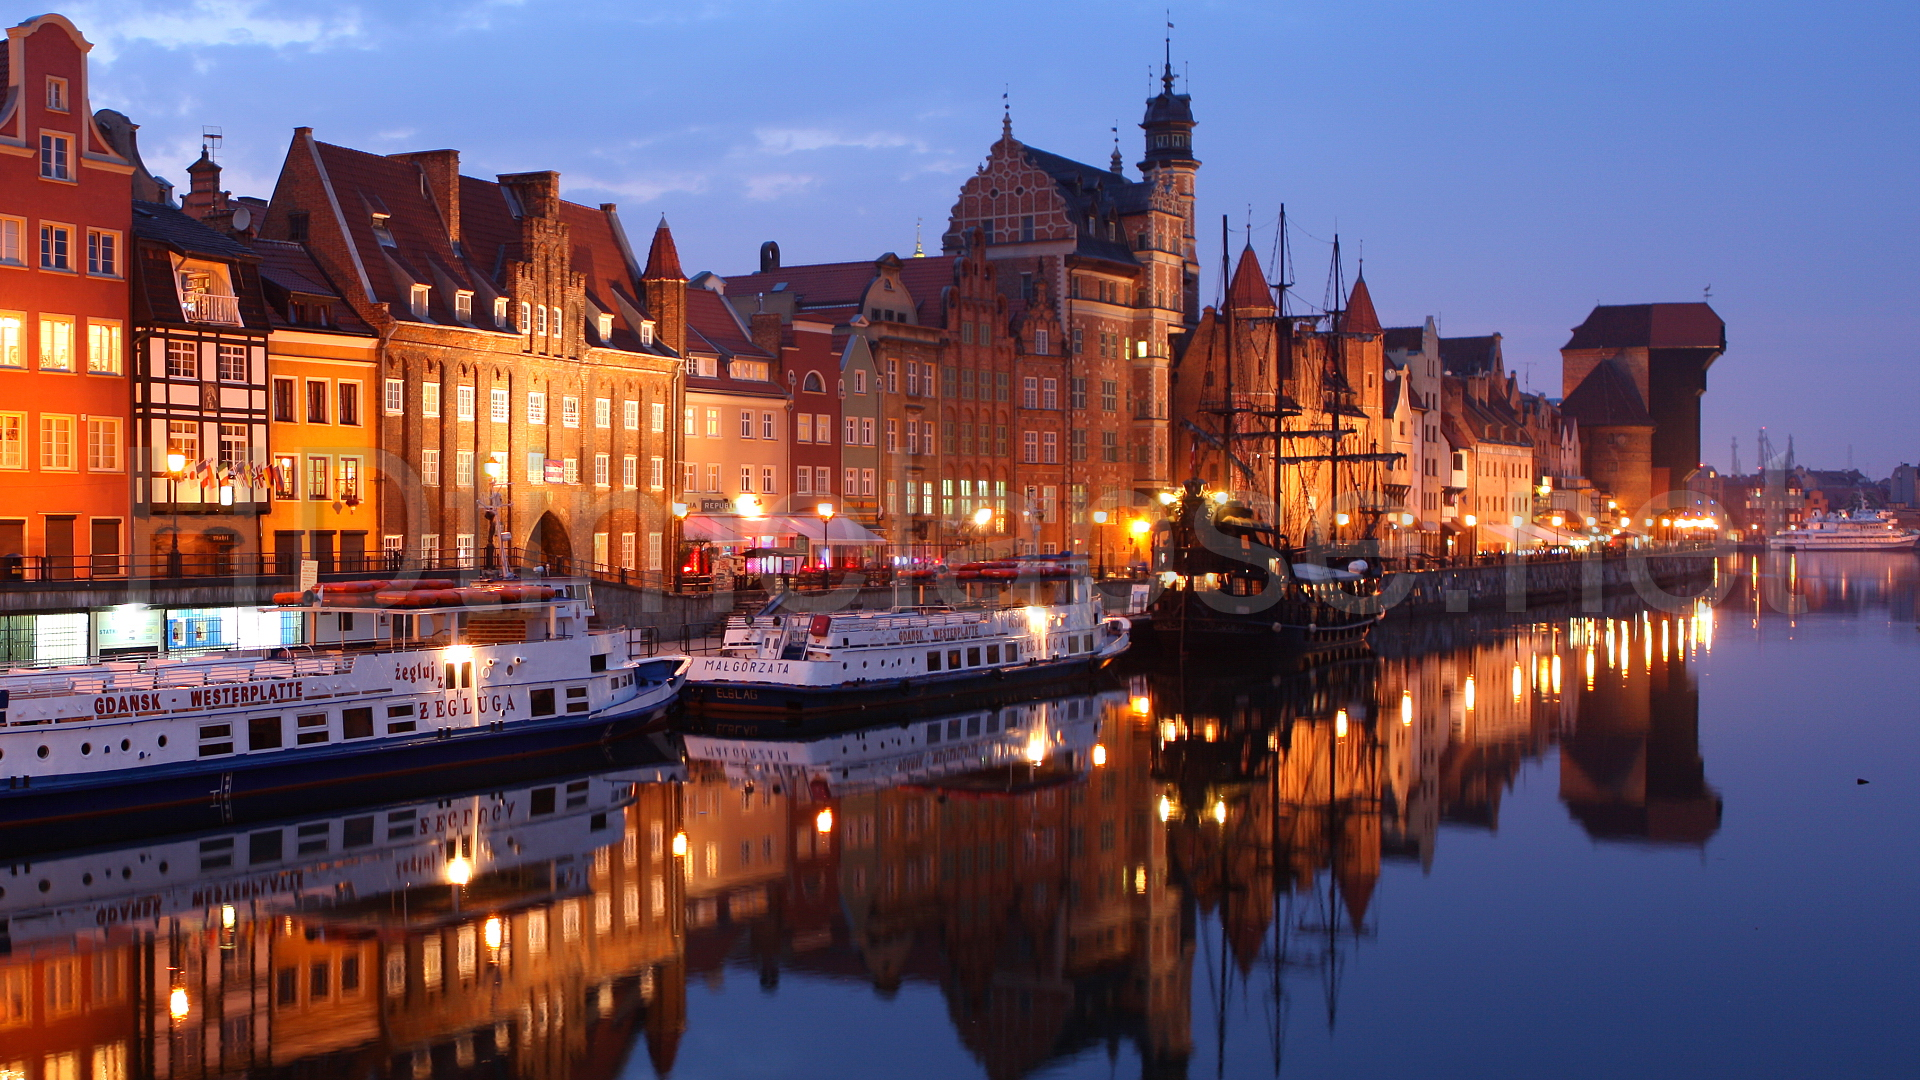 Danzig Wallpaper Hd What To See In Gdansk What To Visit In Gdansk